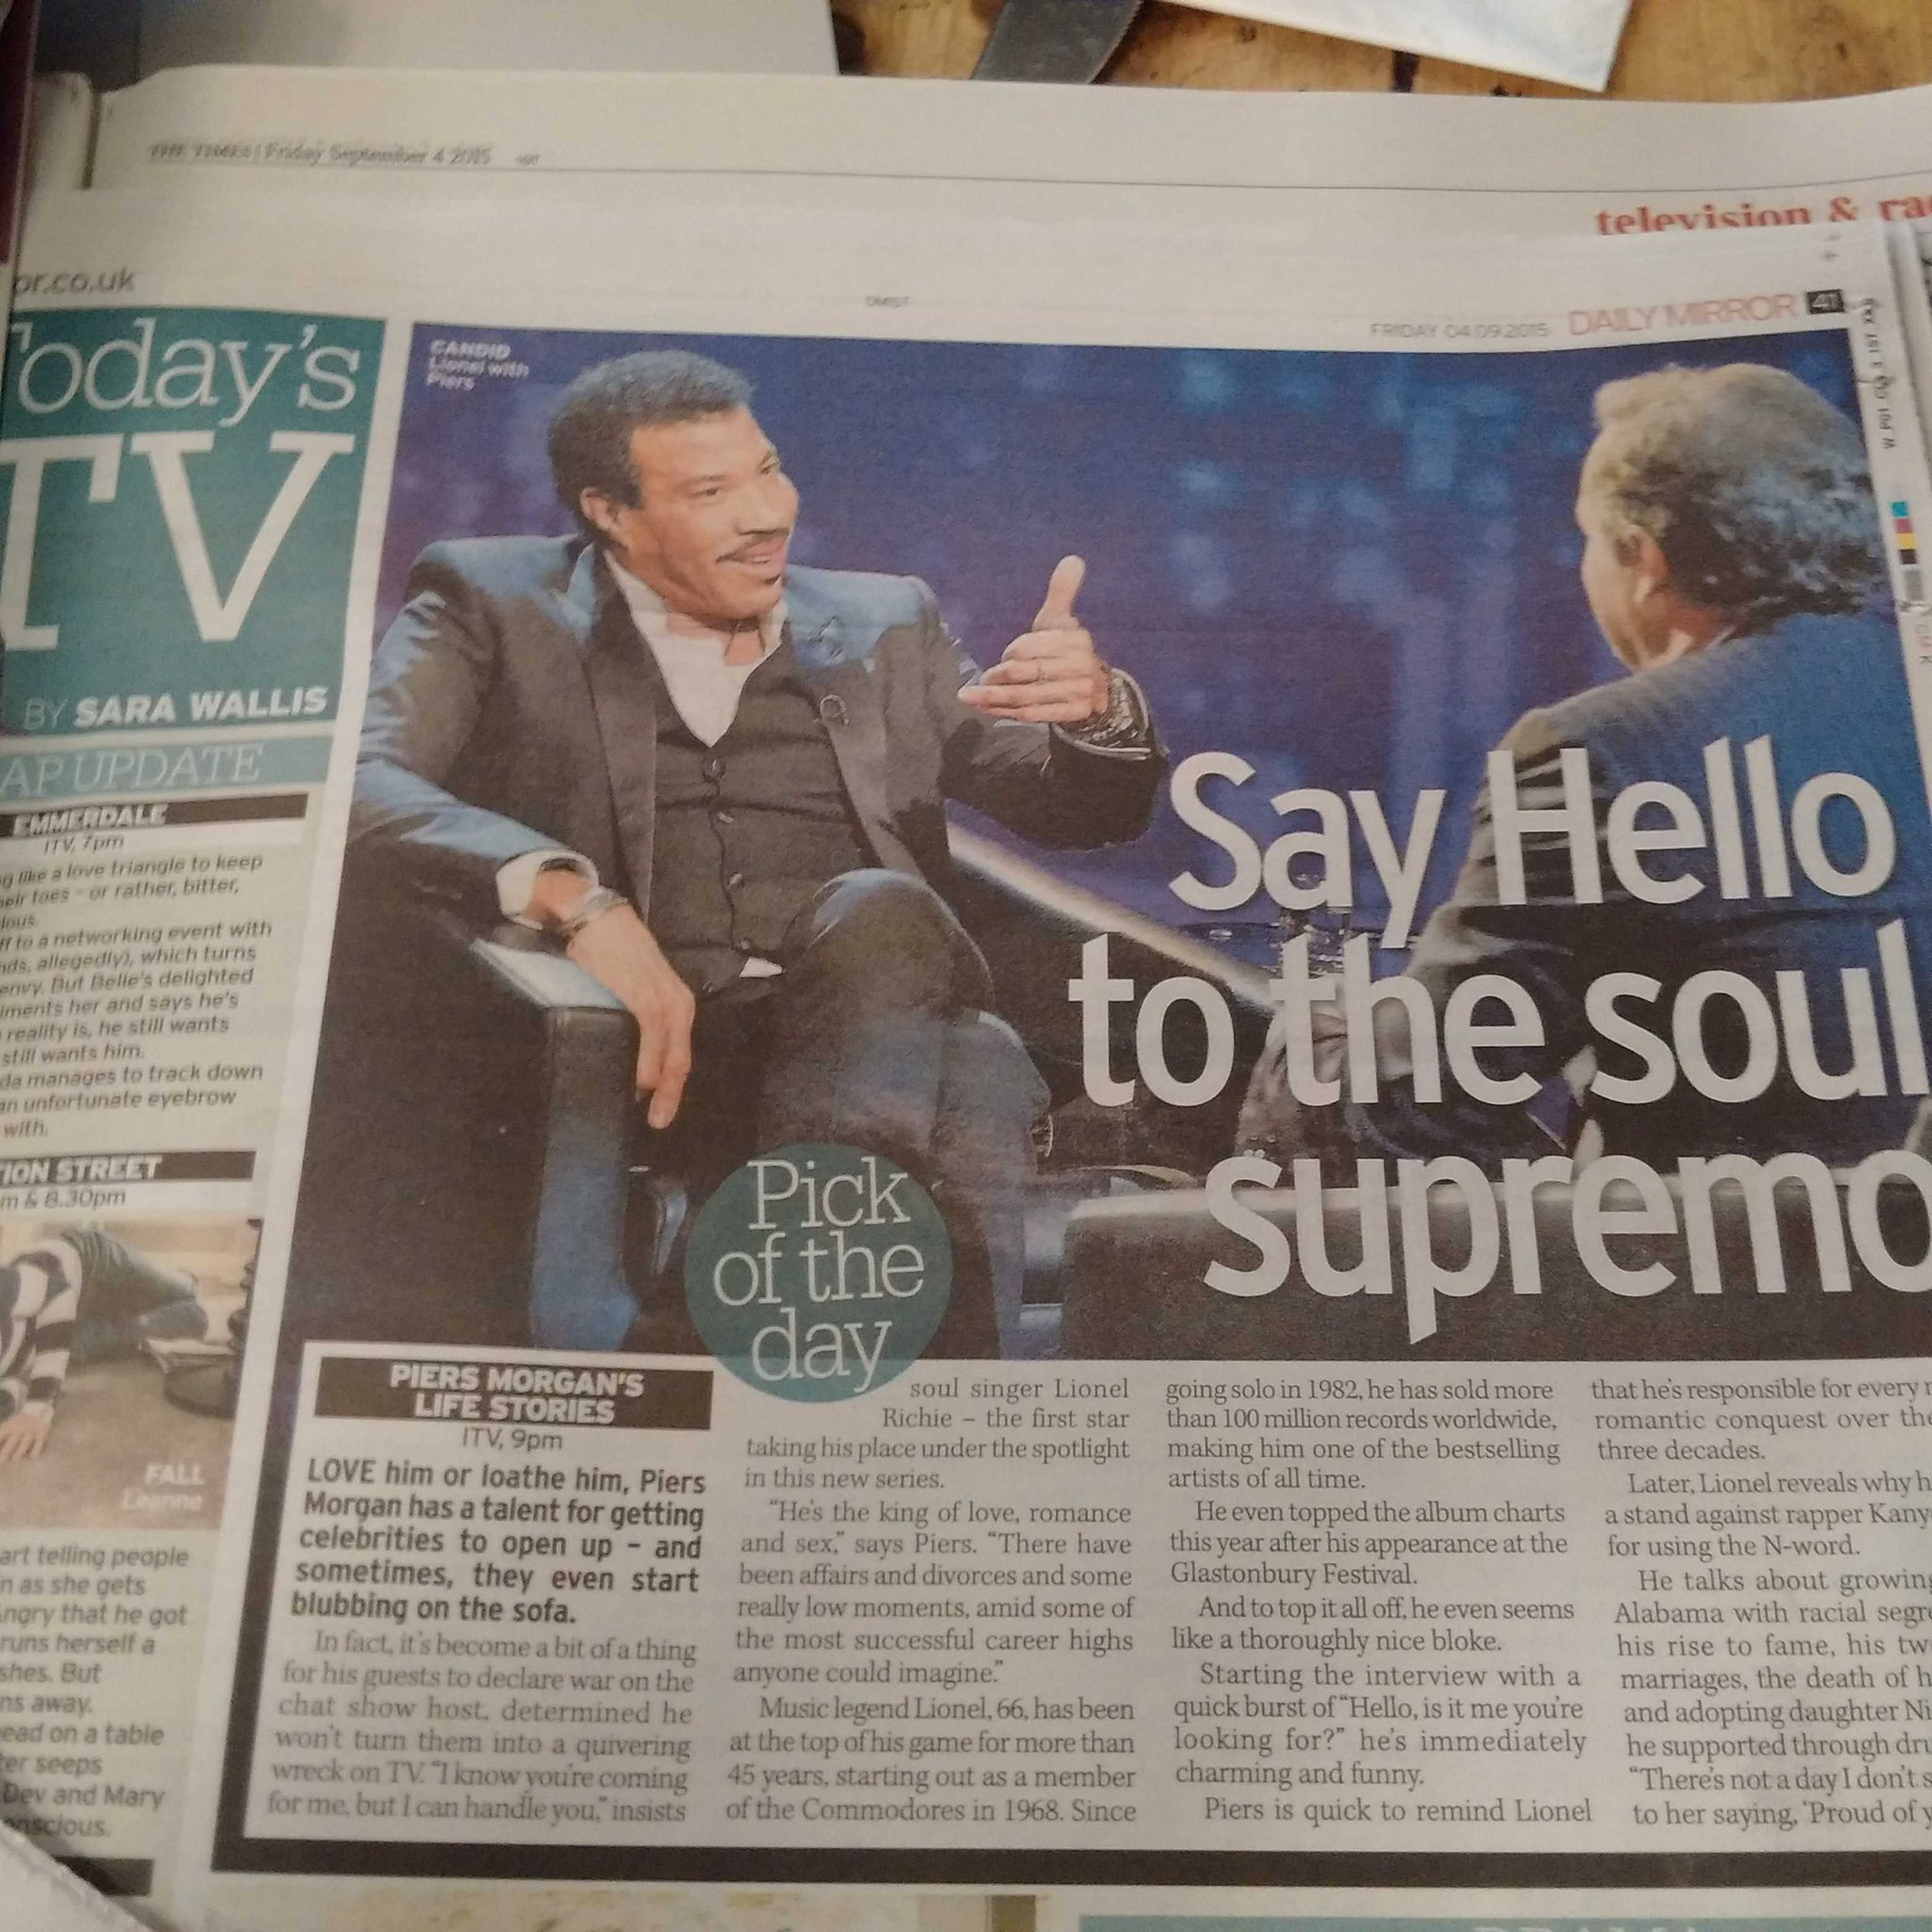 PICK OF THE DAY - @dailymirror #Lionel #LifeStories ITV 9pm http://t.co/KY89fY0yDa